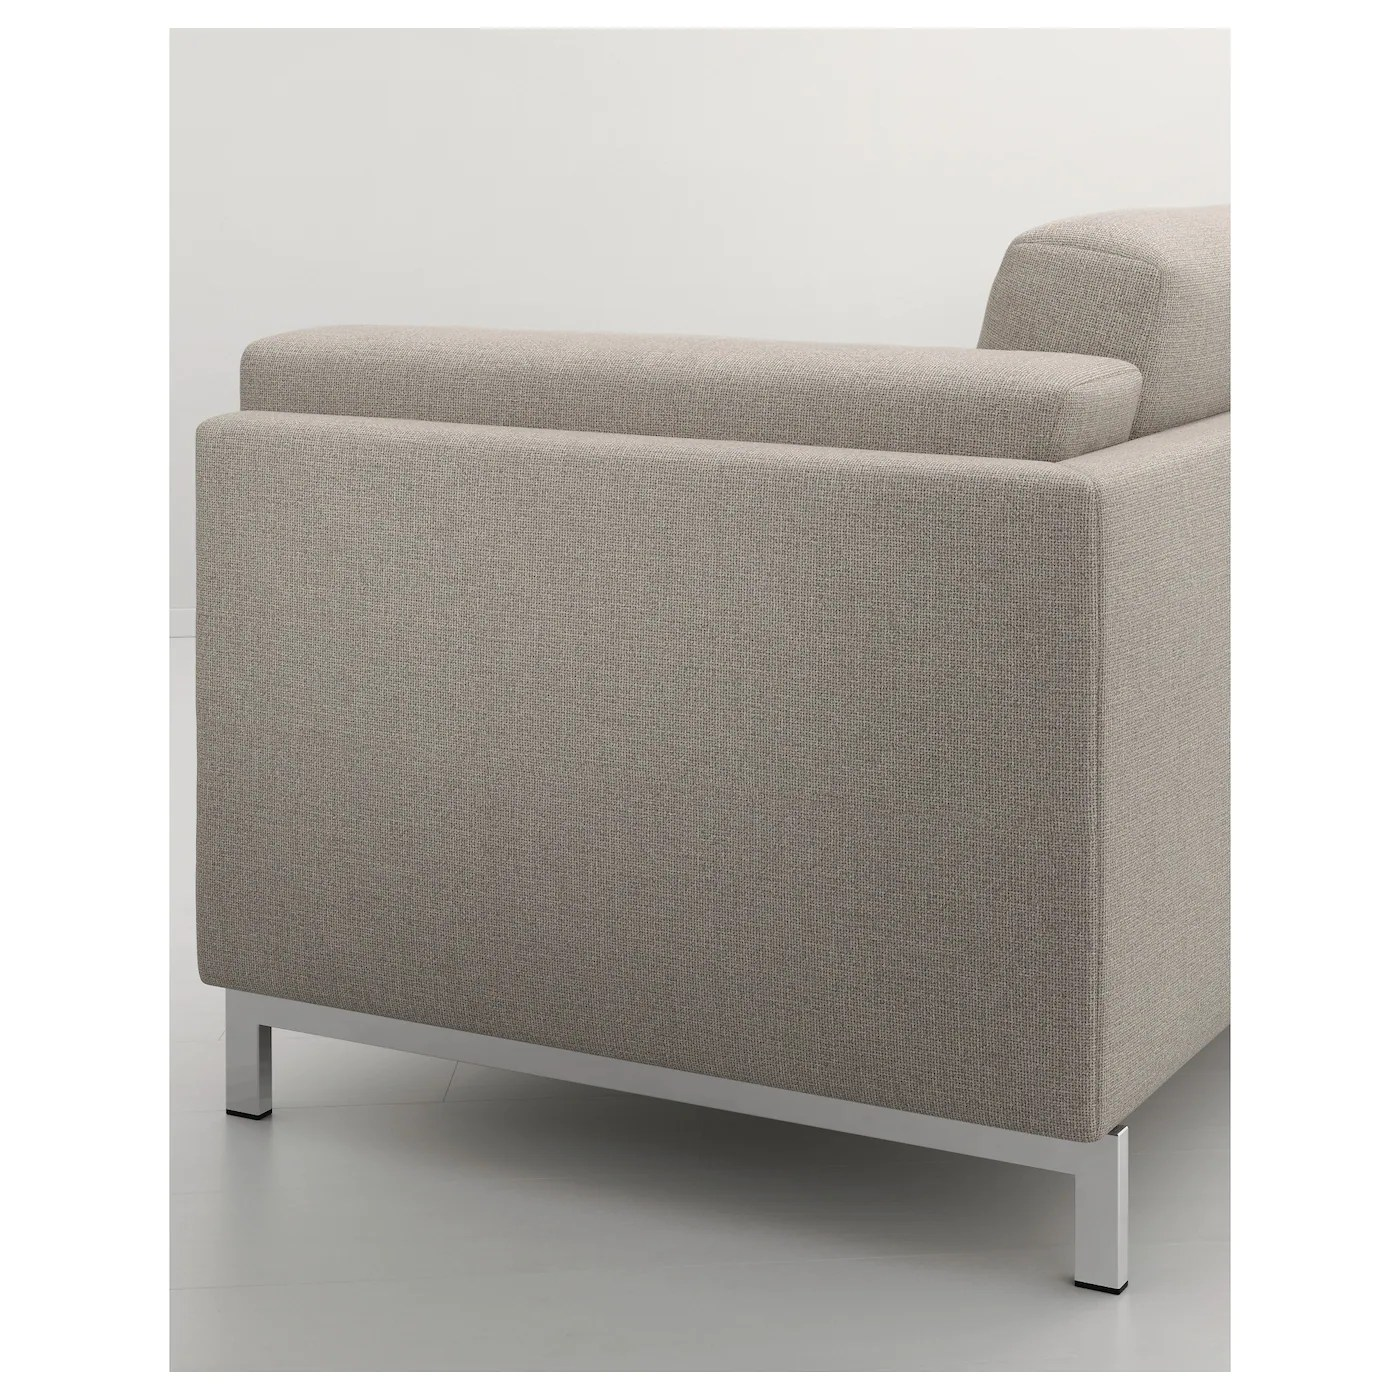 Ikea Sofa Nockeby Test Nockeby Legs For 2 Seat Sofa Chrome Plated Ikea